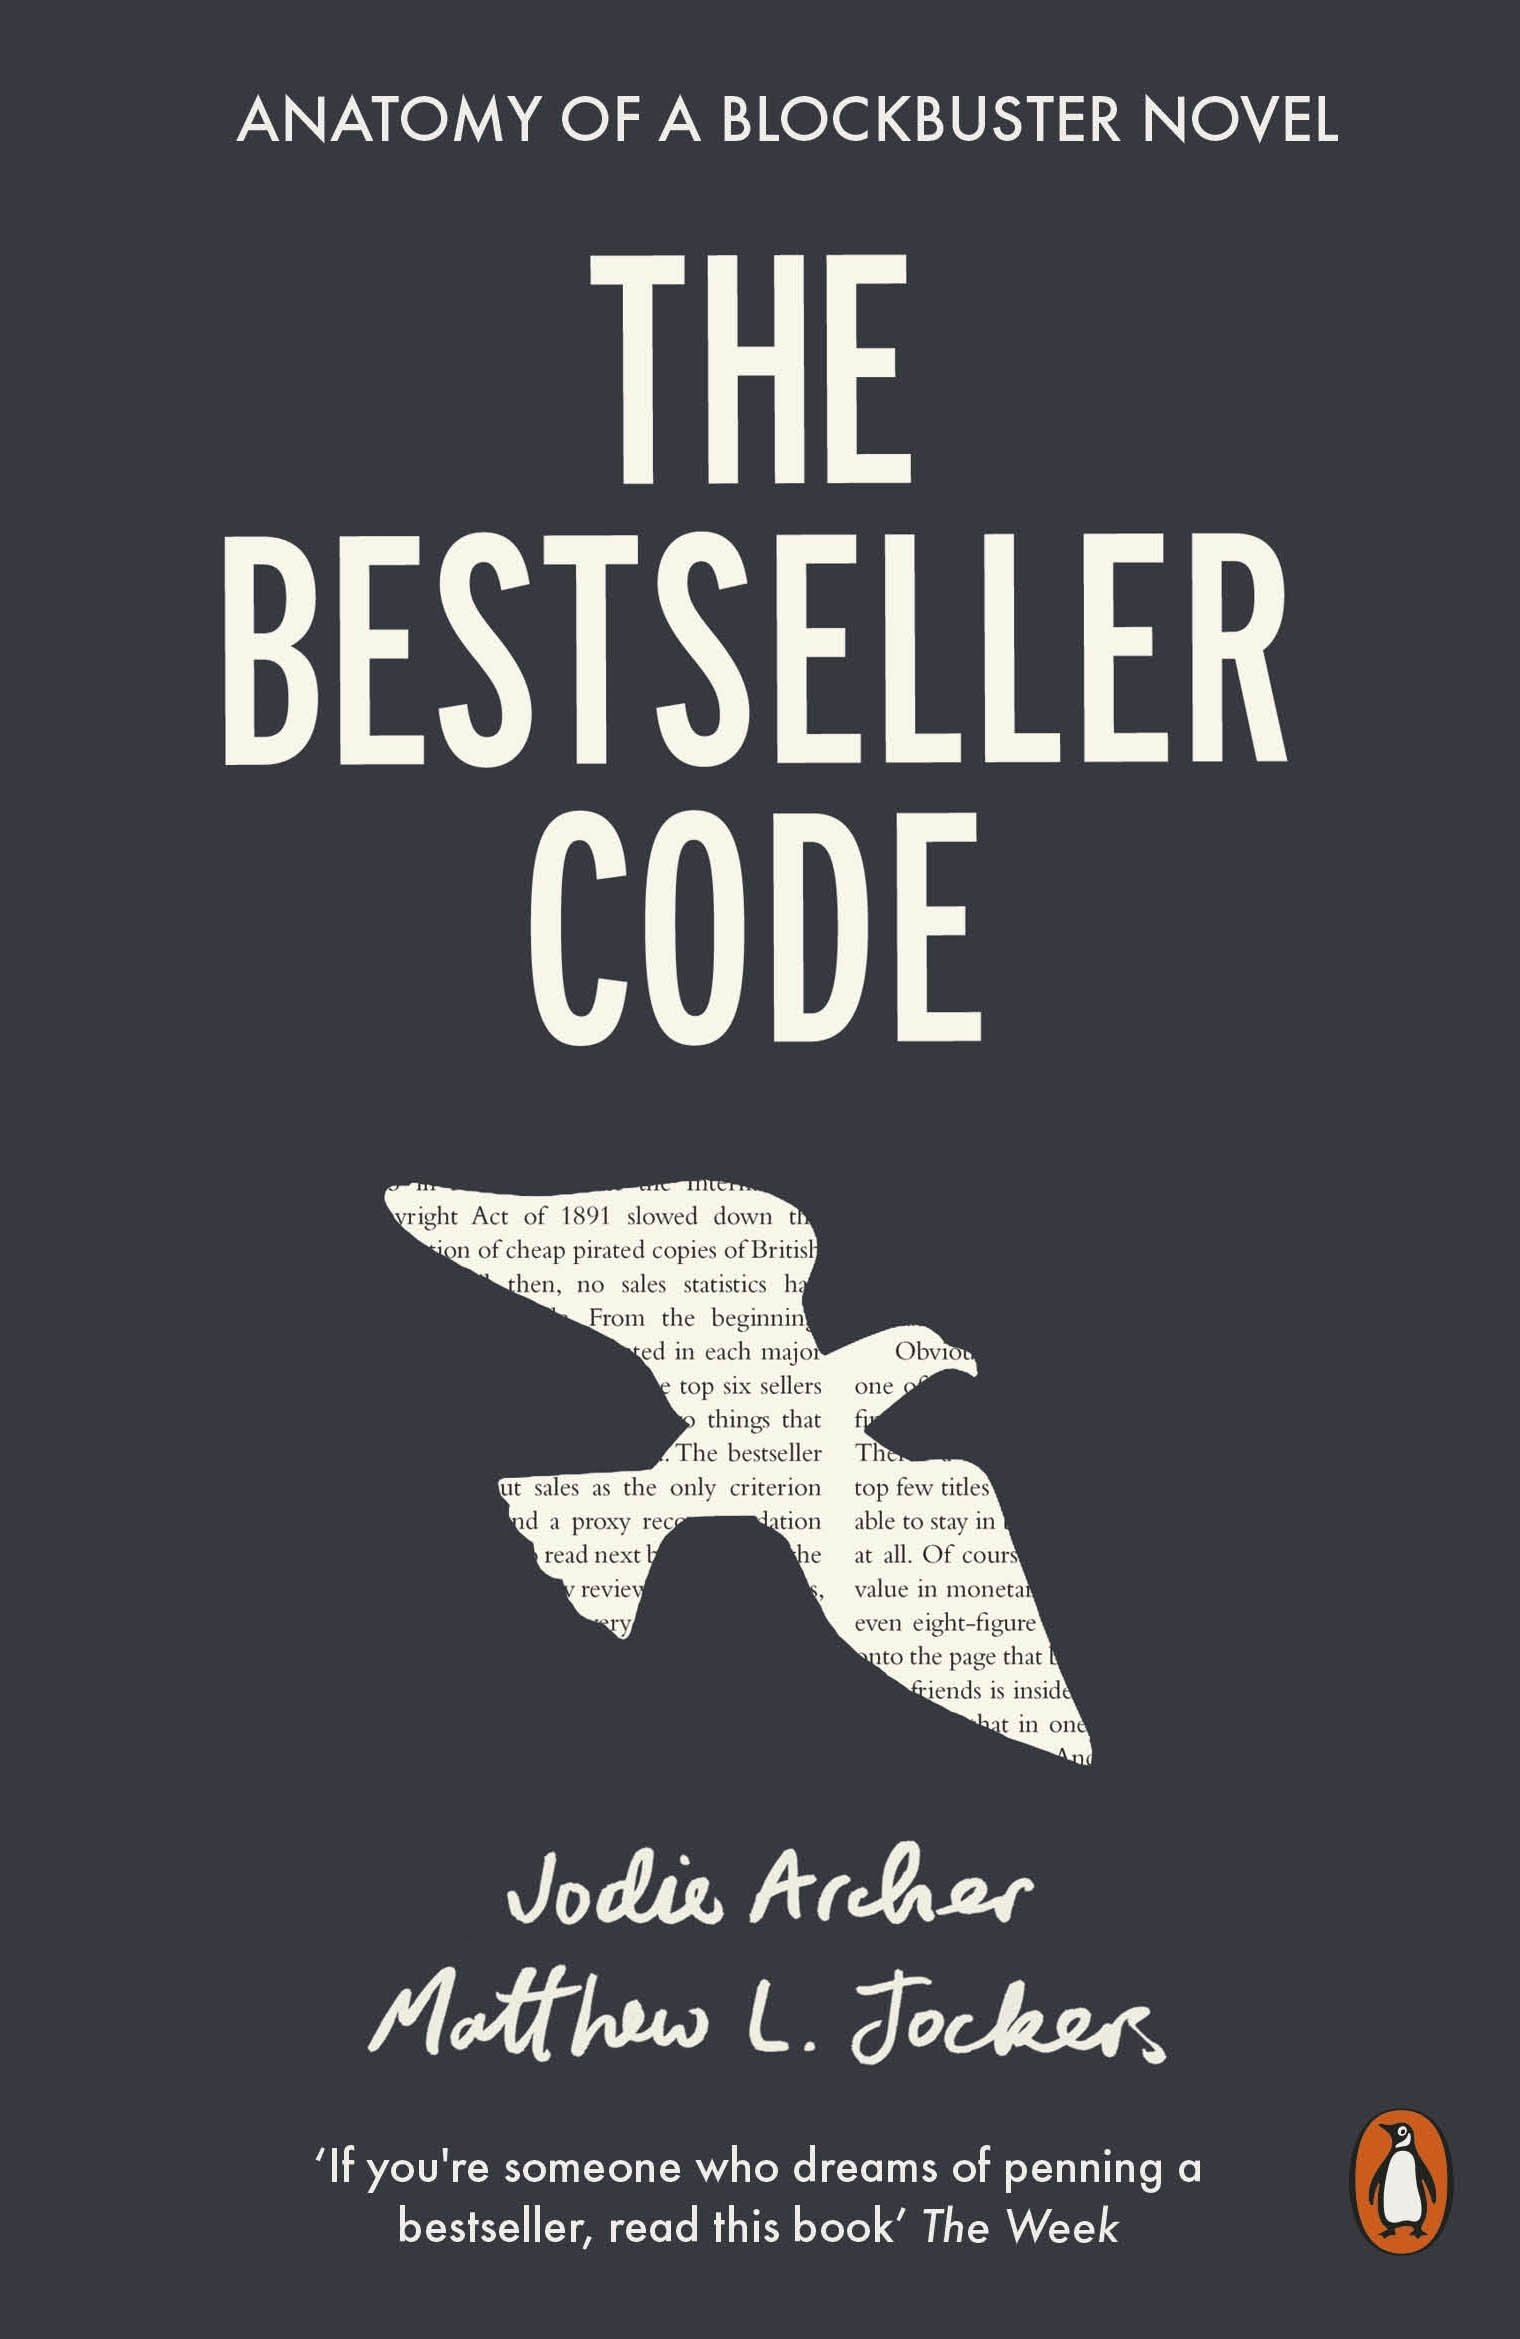 The Bestseller Code Amazon Matthew Jockers Jodie Archer